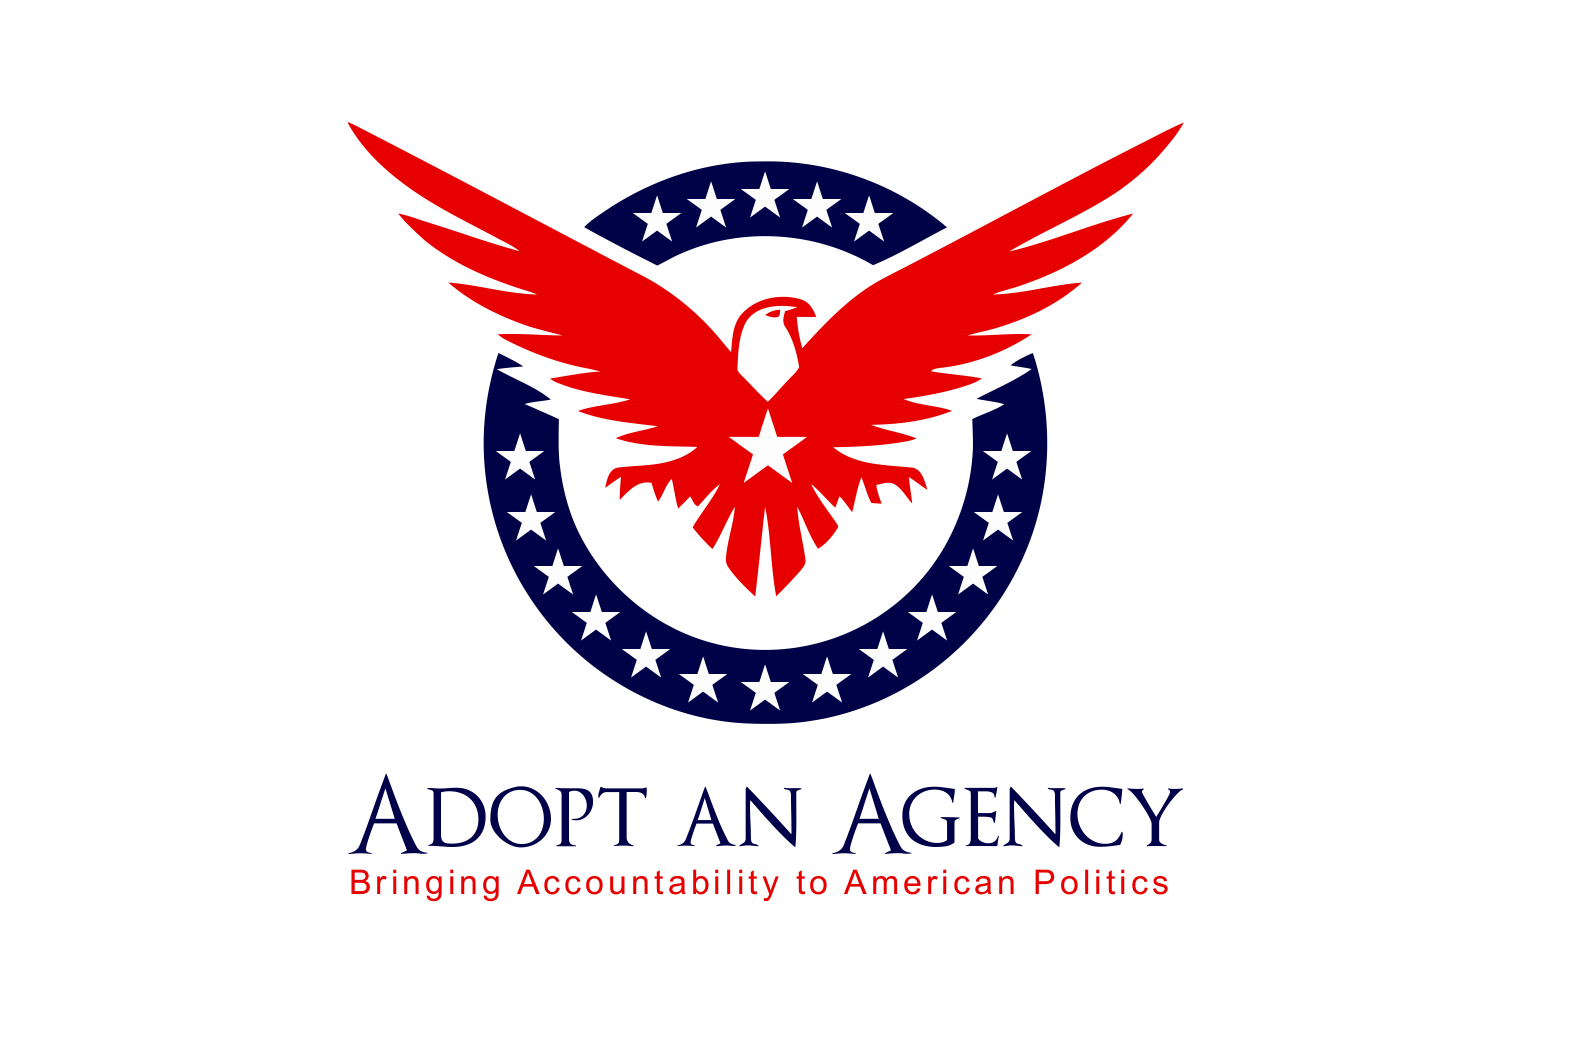 New logo wanted for Adopt an Agency